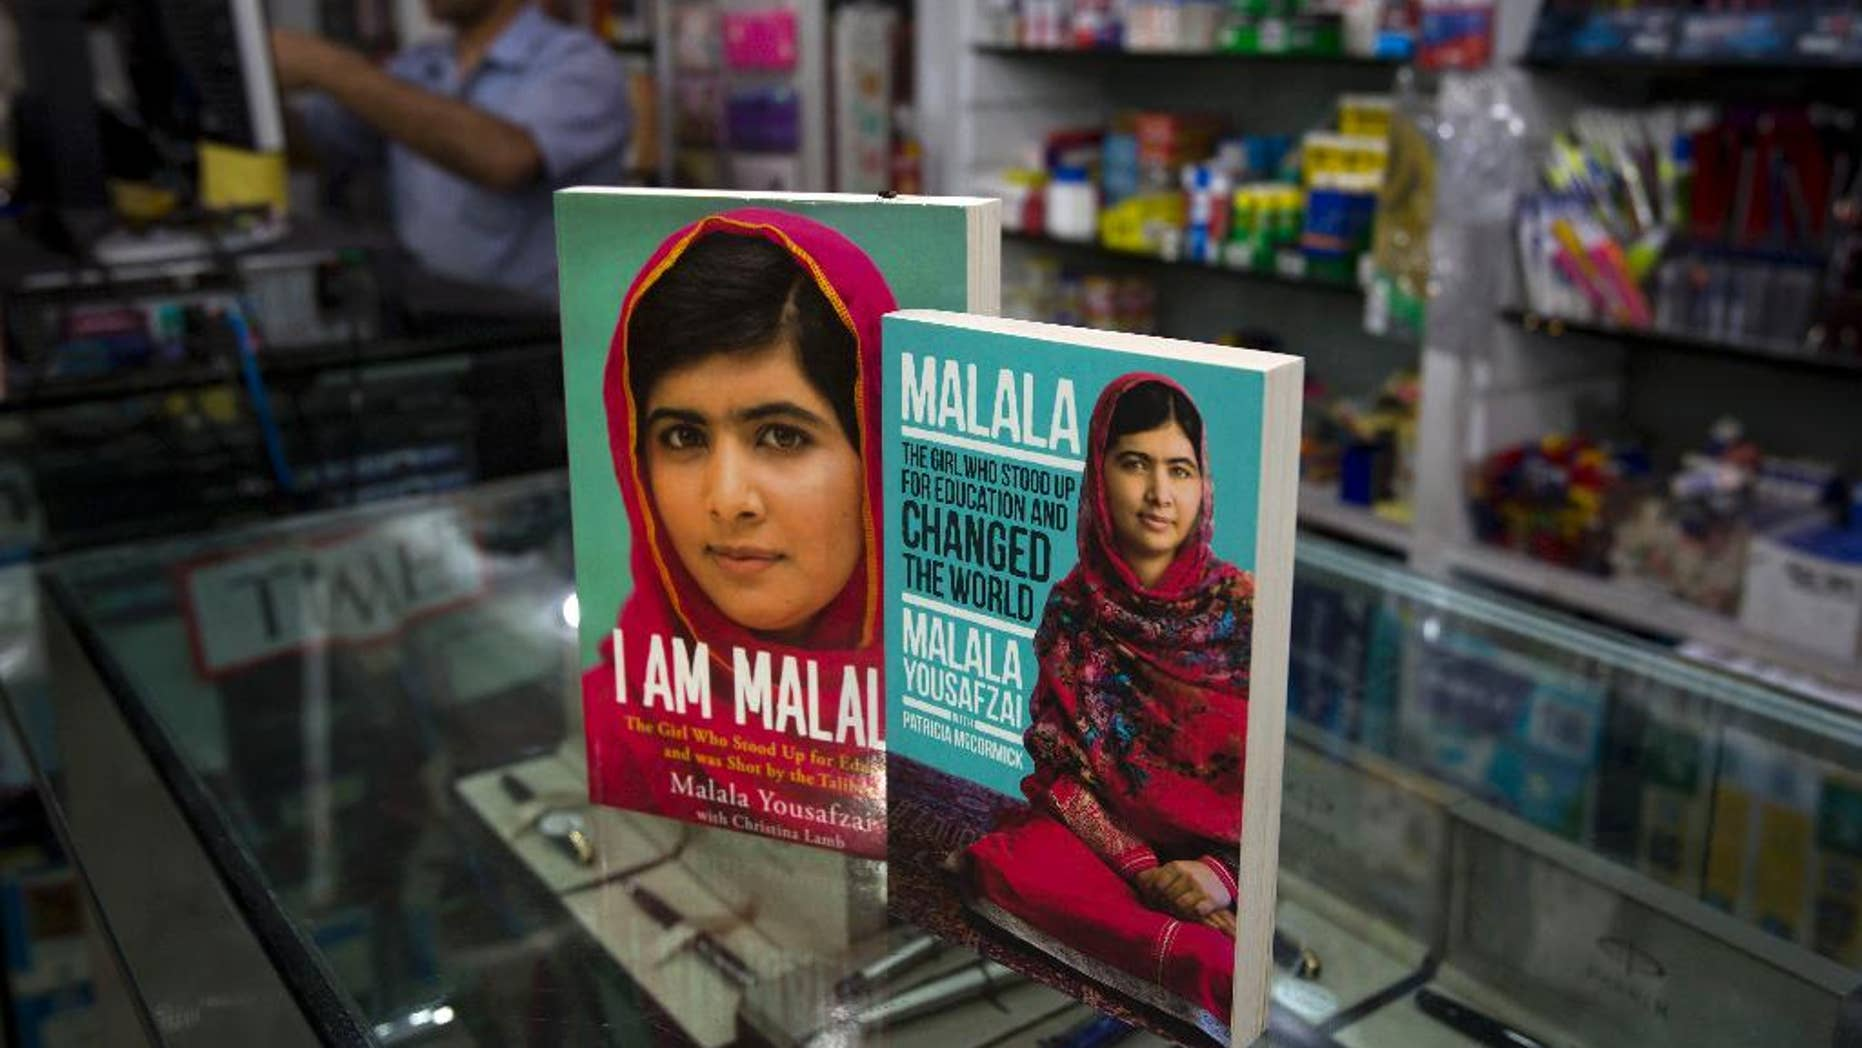 Books about Pakistan's Nobel Prize winner Malala Yousafzai, who survived a Taliban attack, are displayed at a book store in Islamabad, Pakistan, Thursday, April 30, 2015. A Pakistani court on Thursday sentenced 10 militants to life in prison for their involvement in the 2012 attack on teenage activist Malala Yousafzai, a public prosecutor said. (AP Photo/B.K. Bangash)